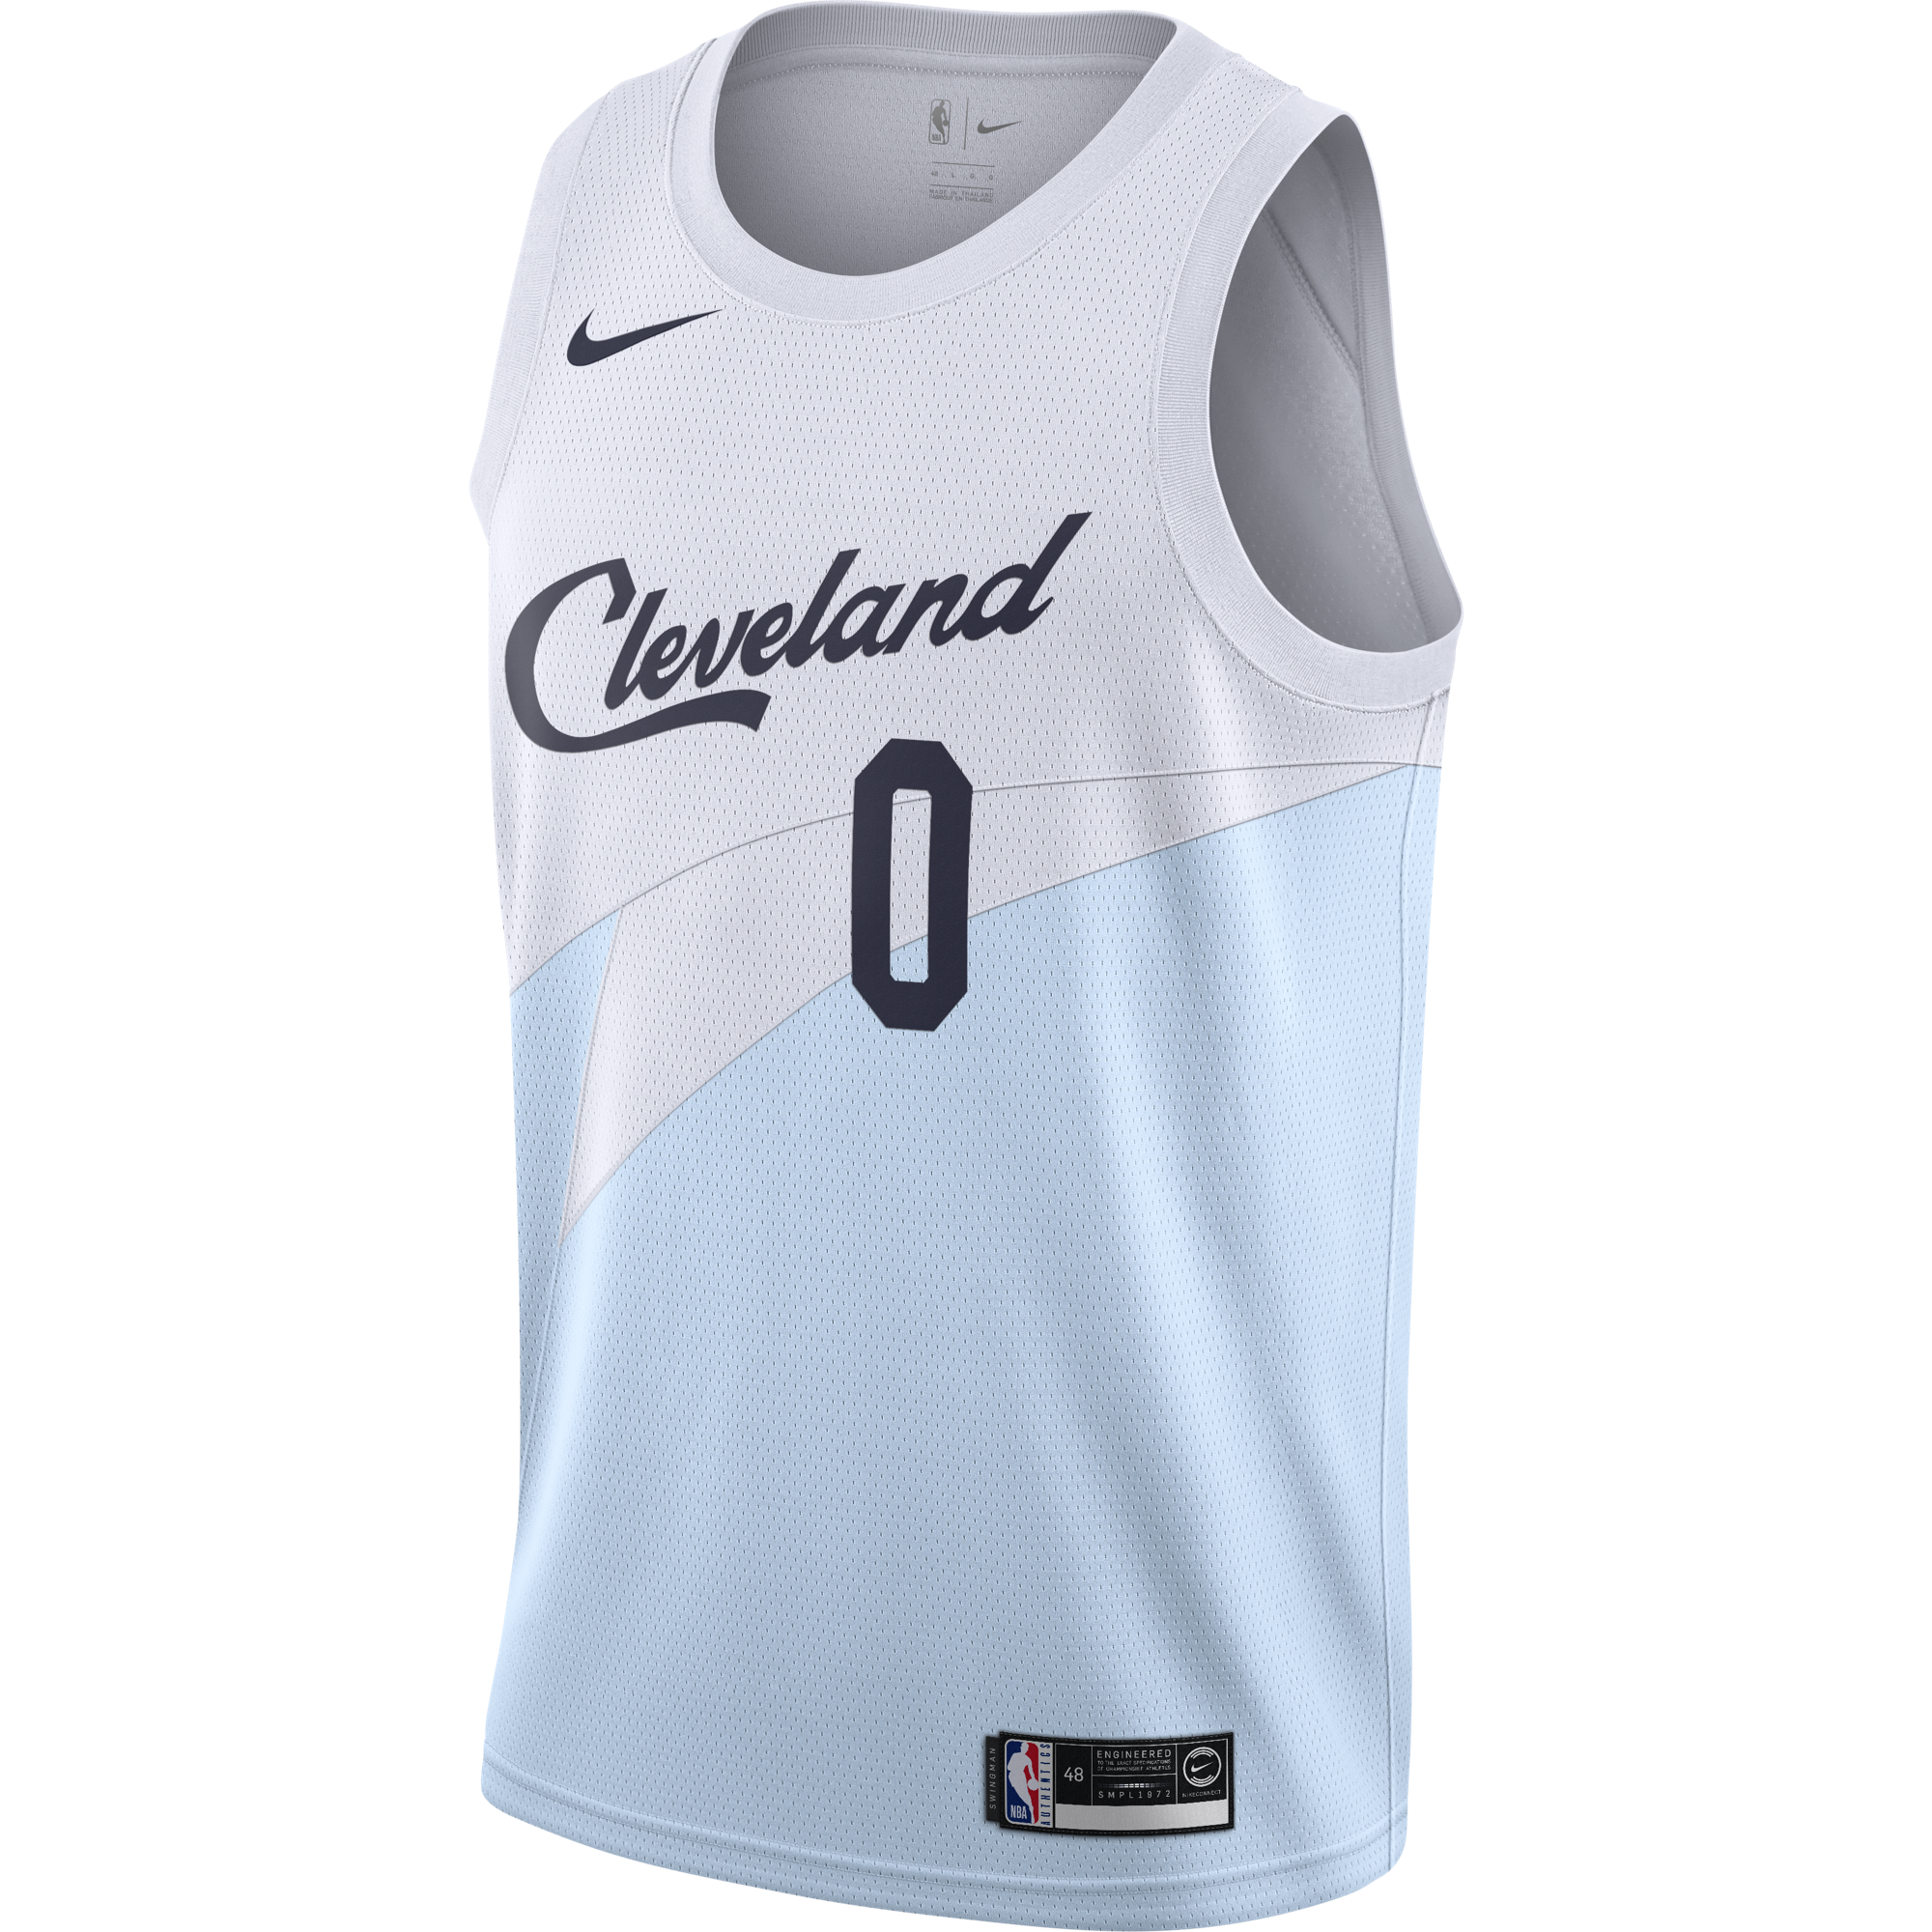 64834d19ec4 Kevin Love Nike Swingman Jersey - Earned Edition for $109.99 Fanatics